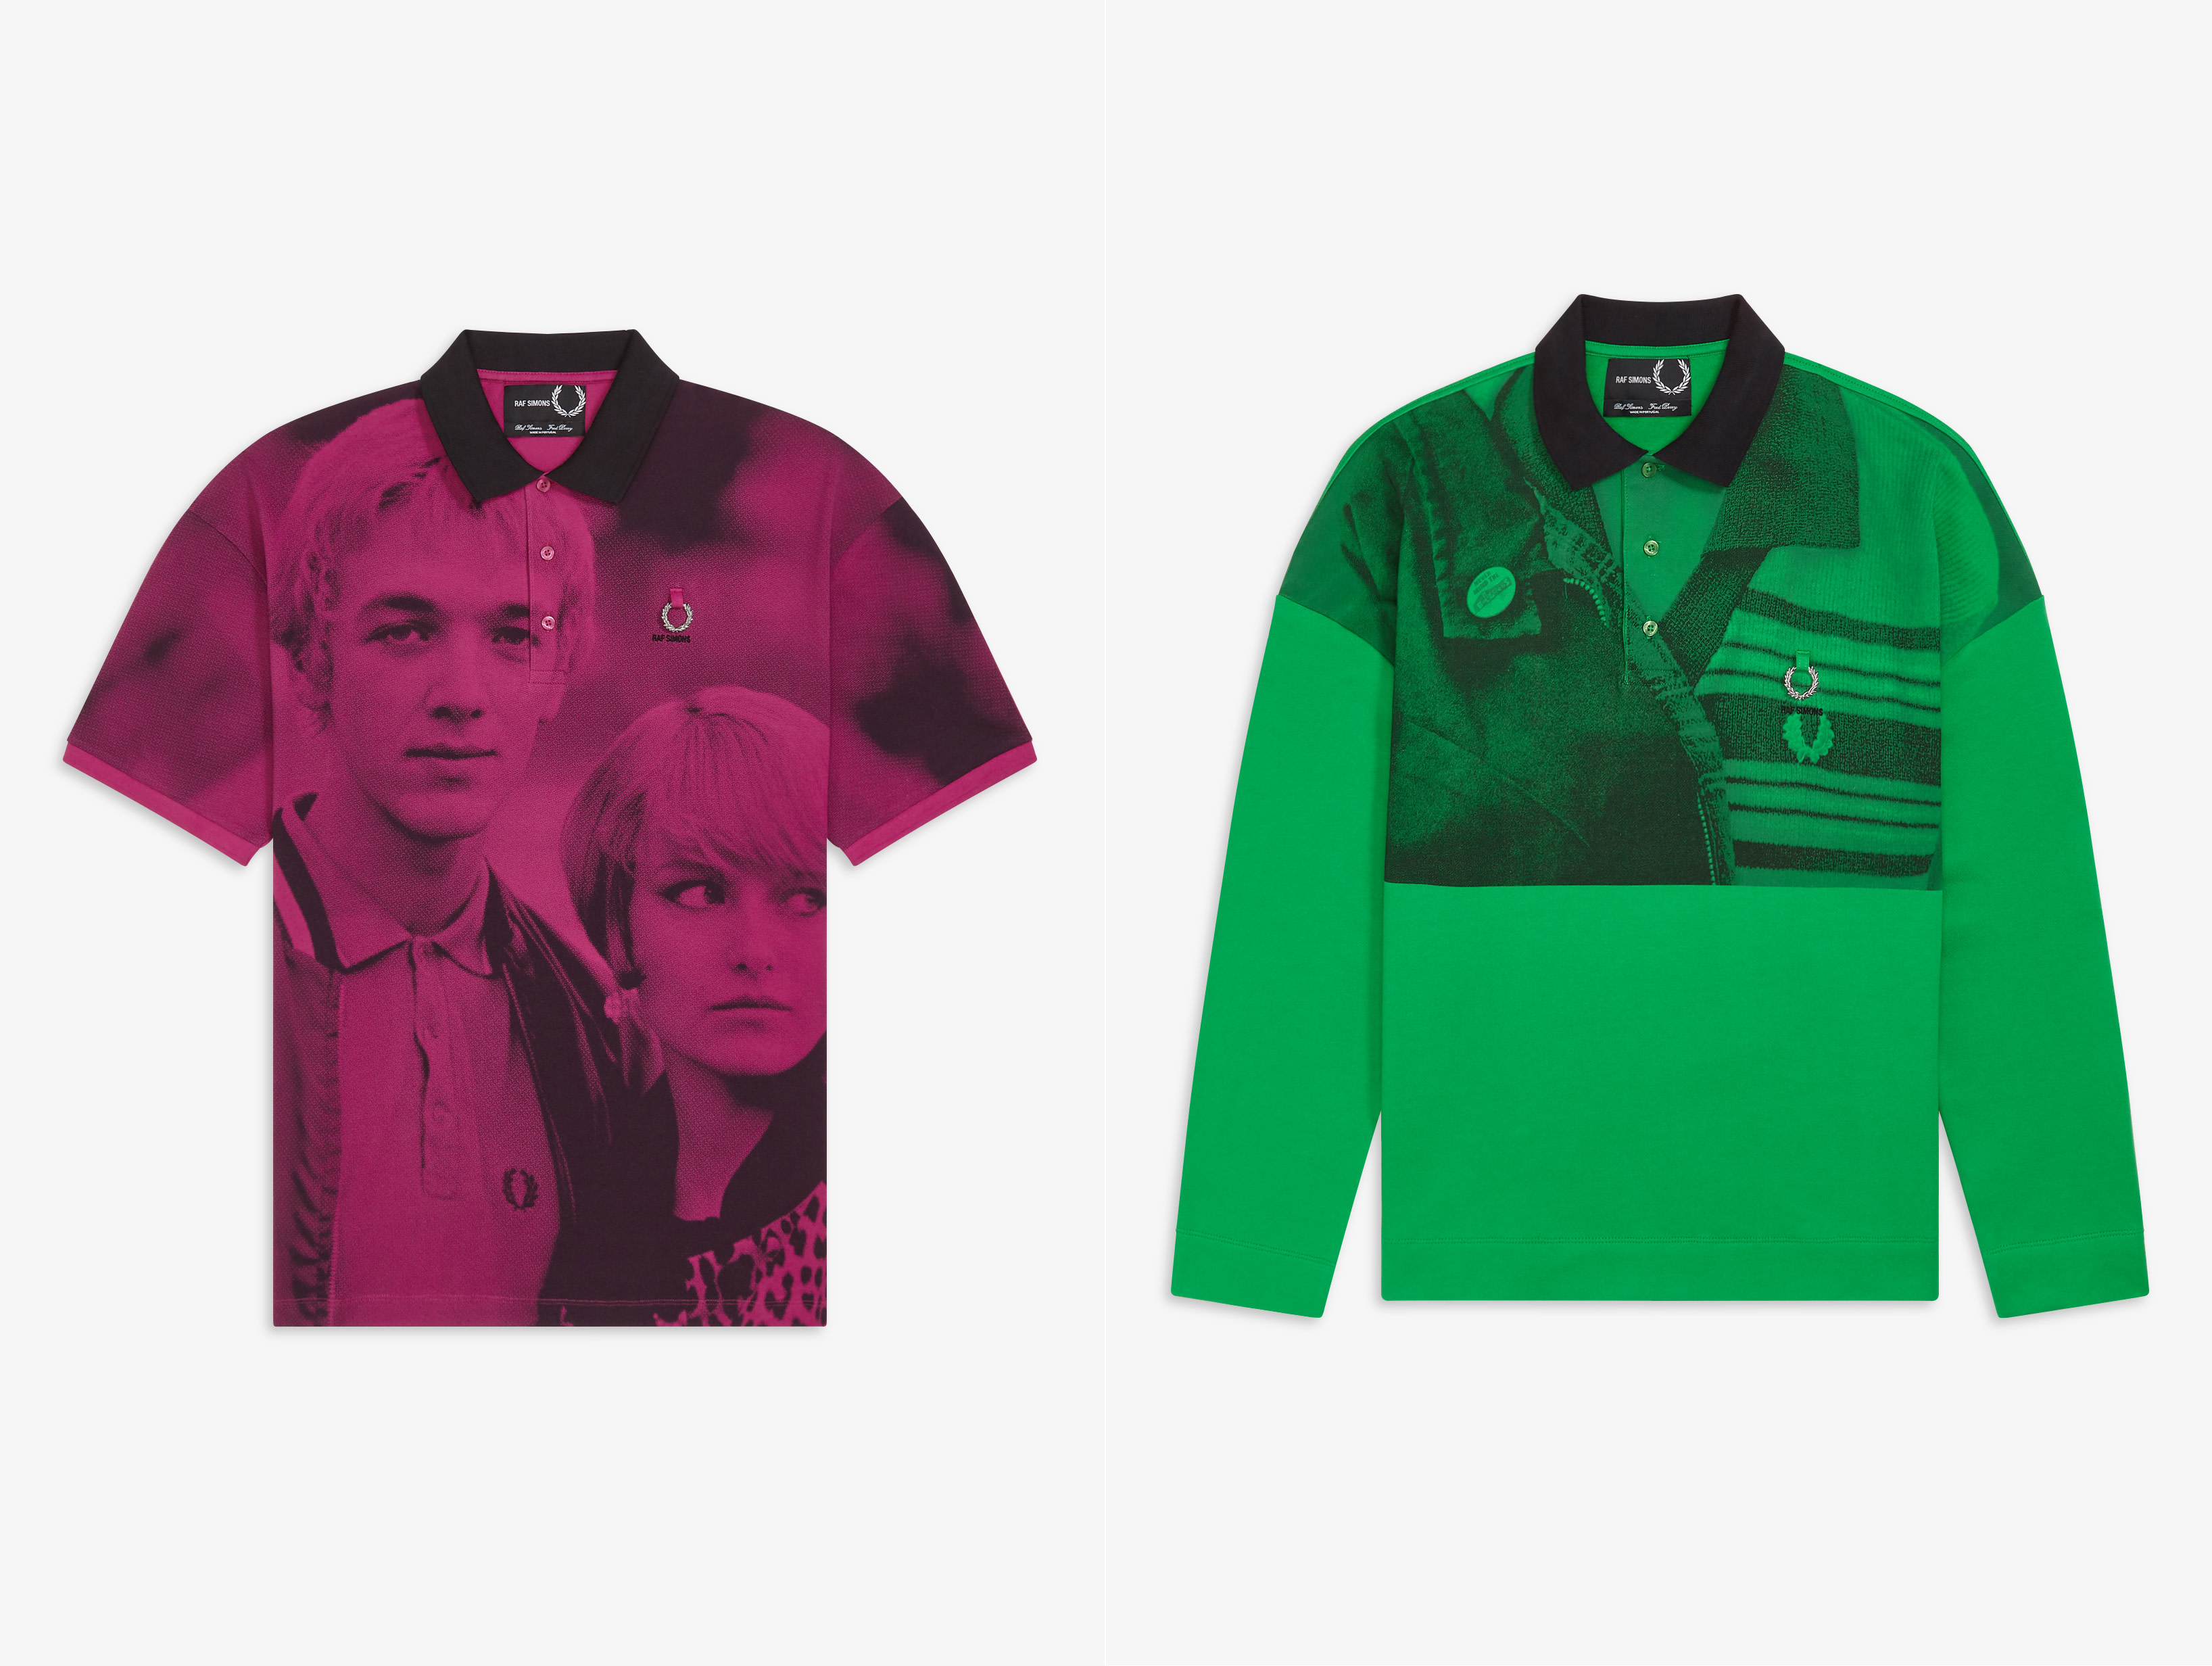 The Latest Fred Perry X Raf Simons Collection Is a Photography Showcase